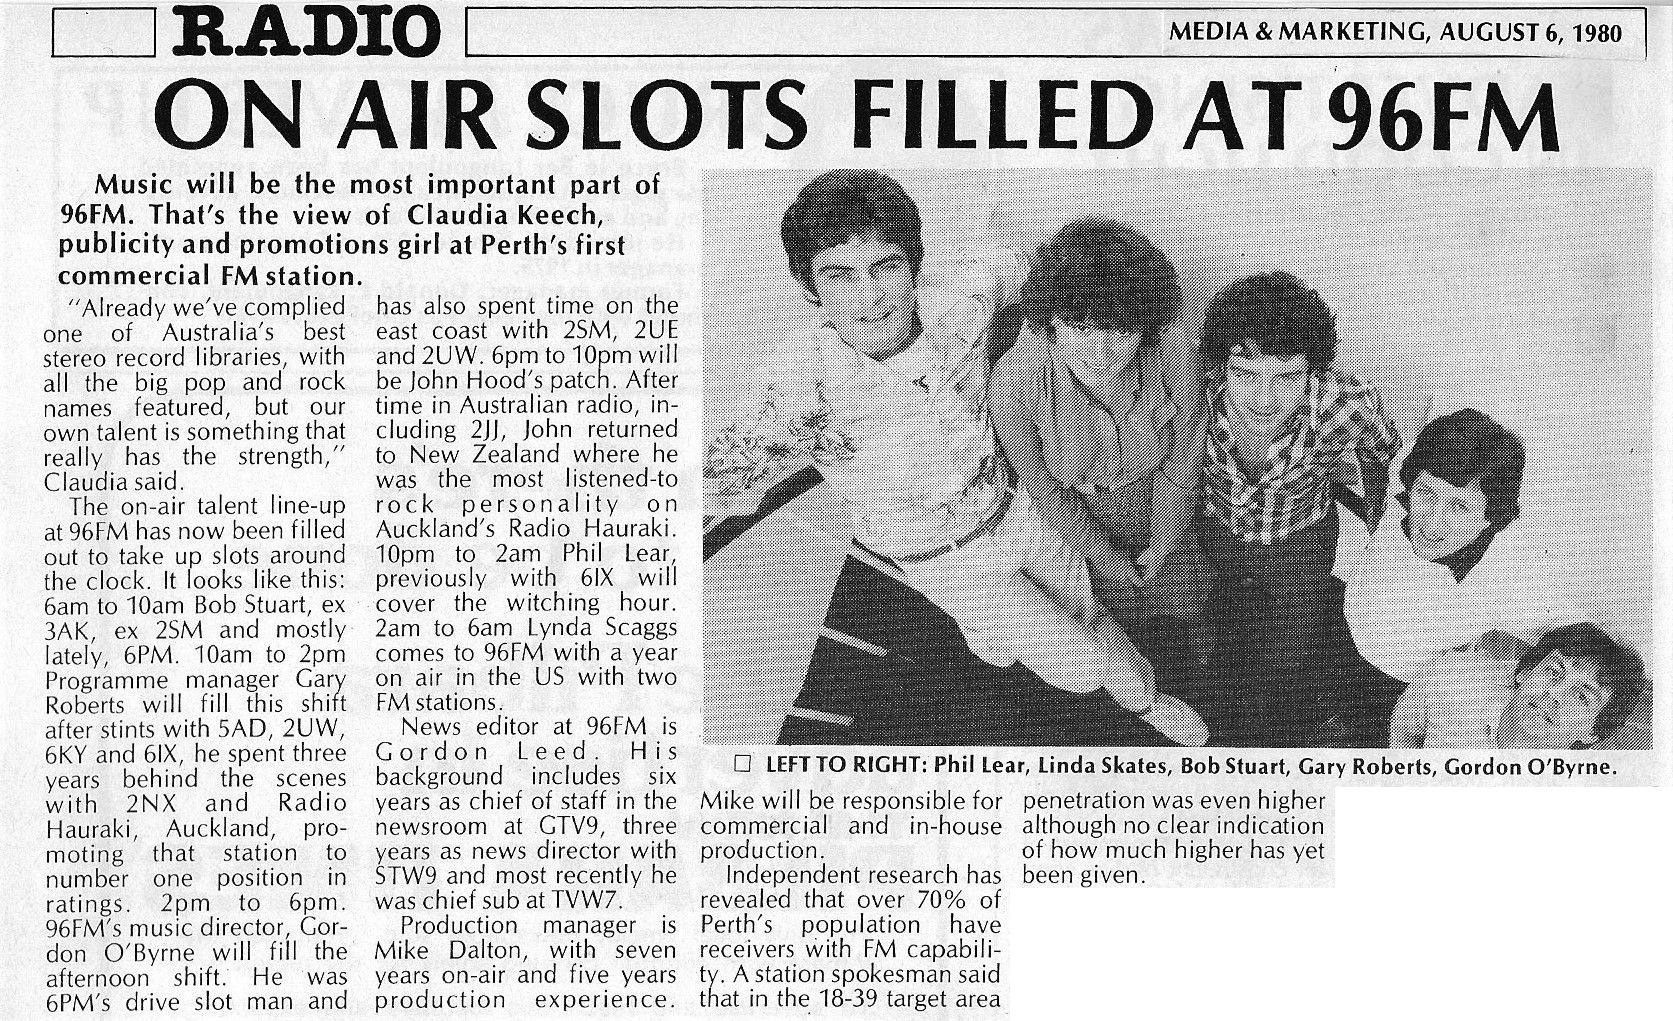 1980.08.06 - On Air Slots Filled at 96FM - Media & Marketing.png